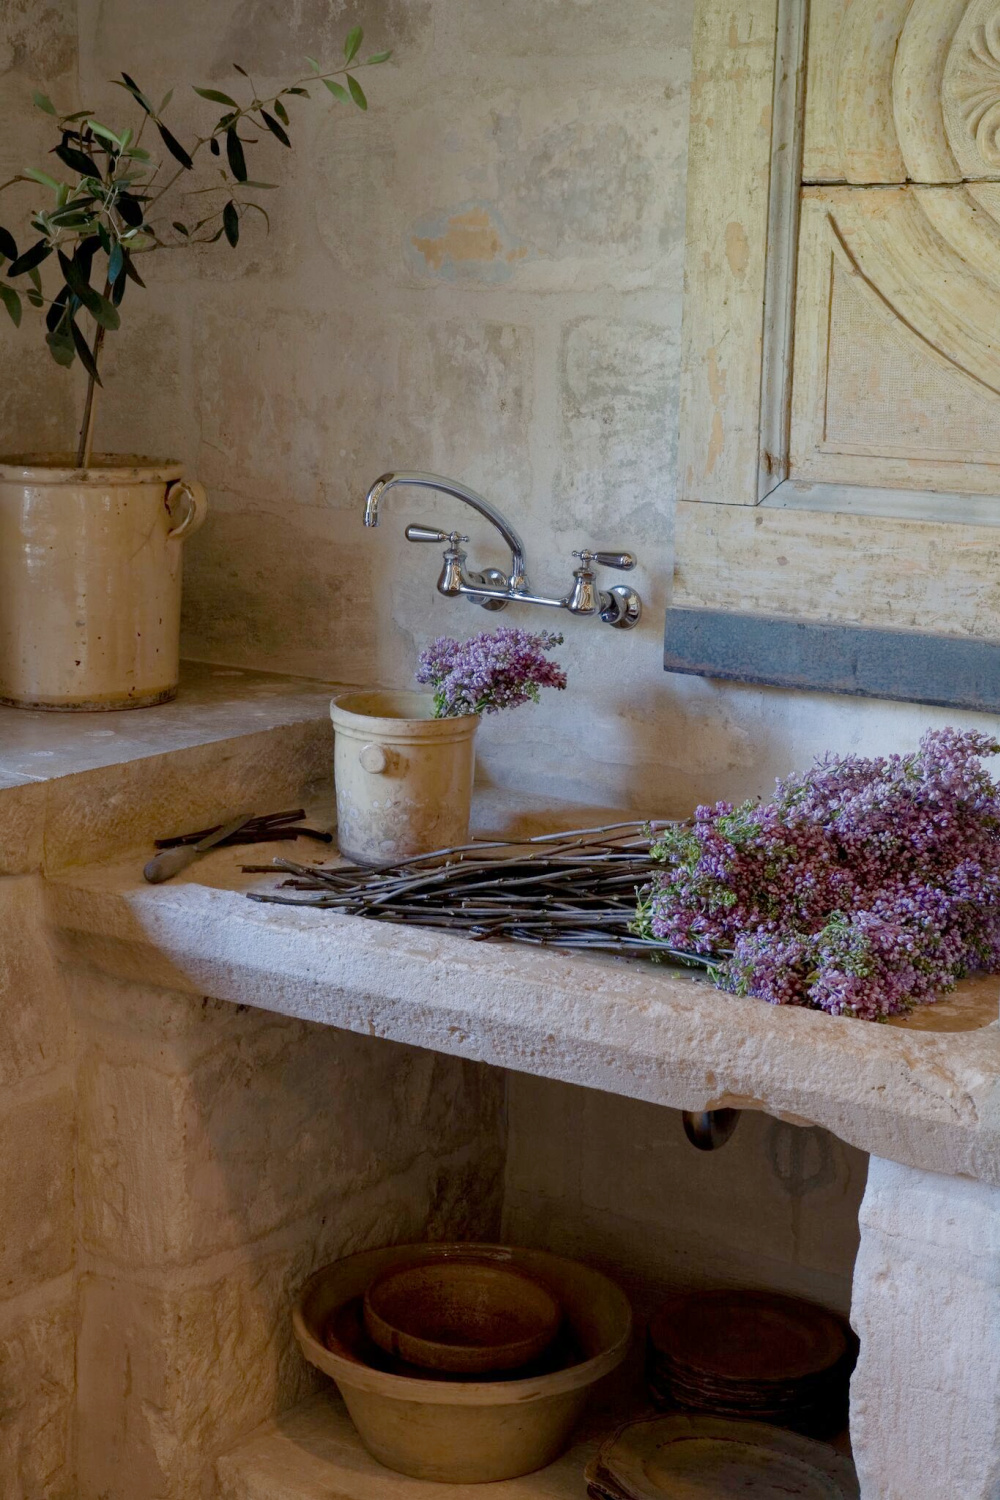 Country French romance and authenticity - rugged stone and French earthenware in Ruth Gay's stunning country French house in Houston - Chateau Domingue.